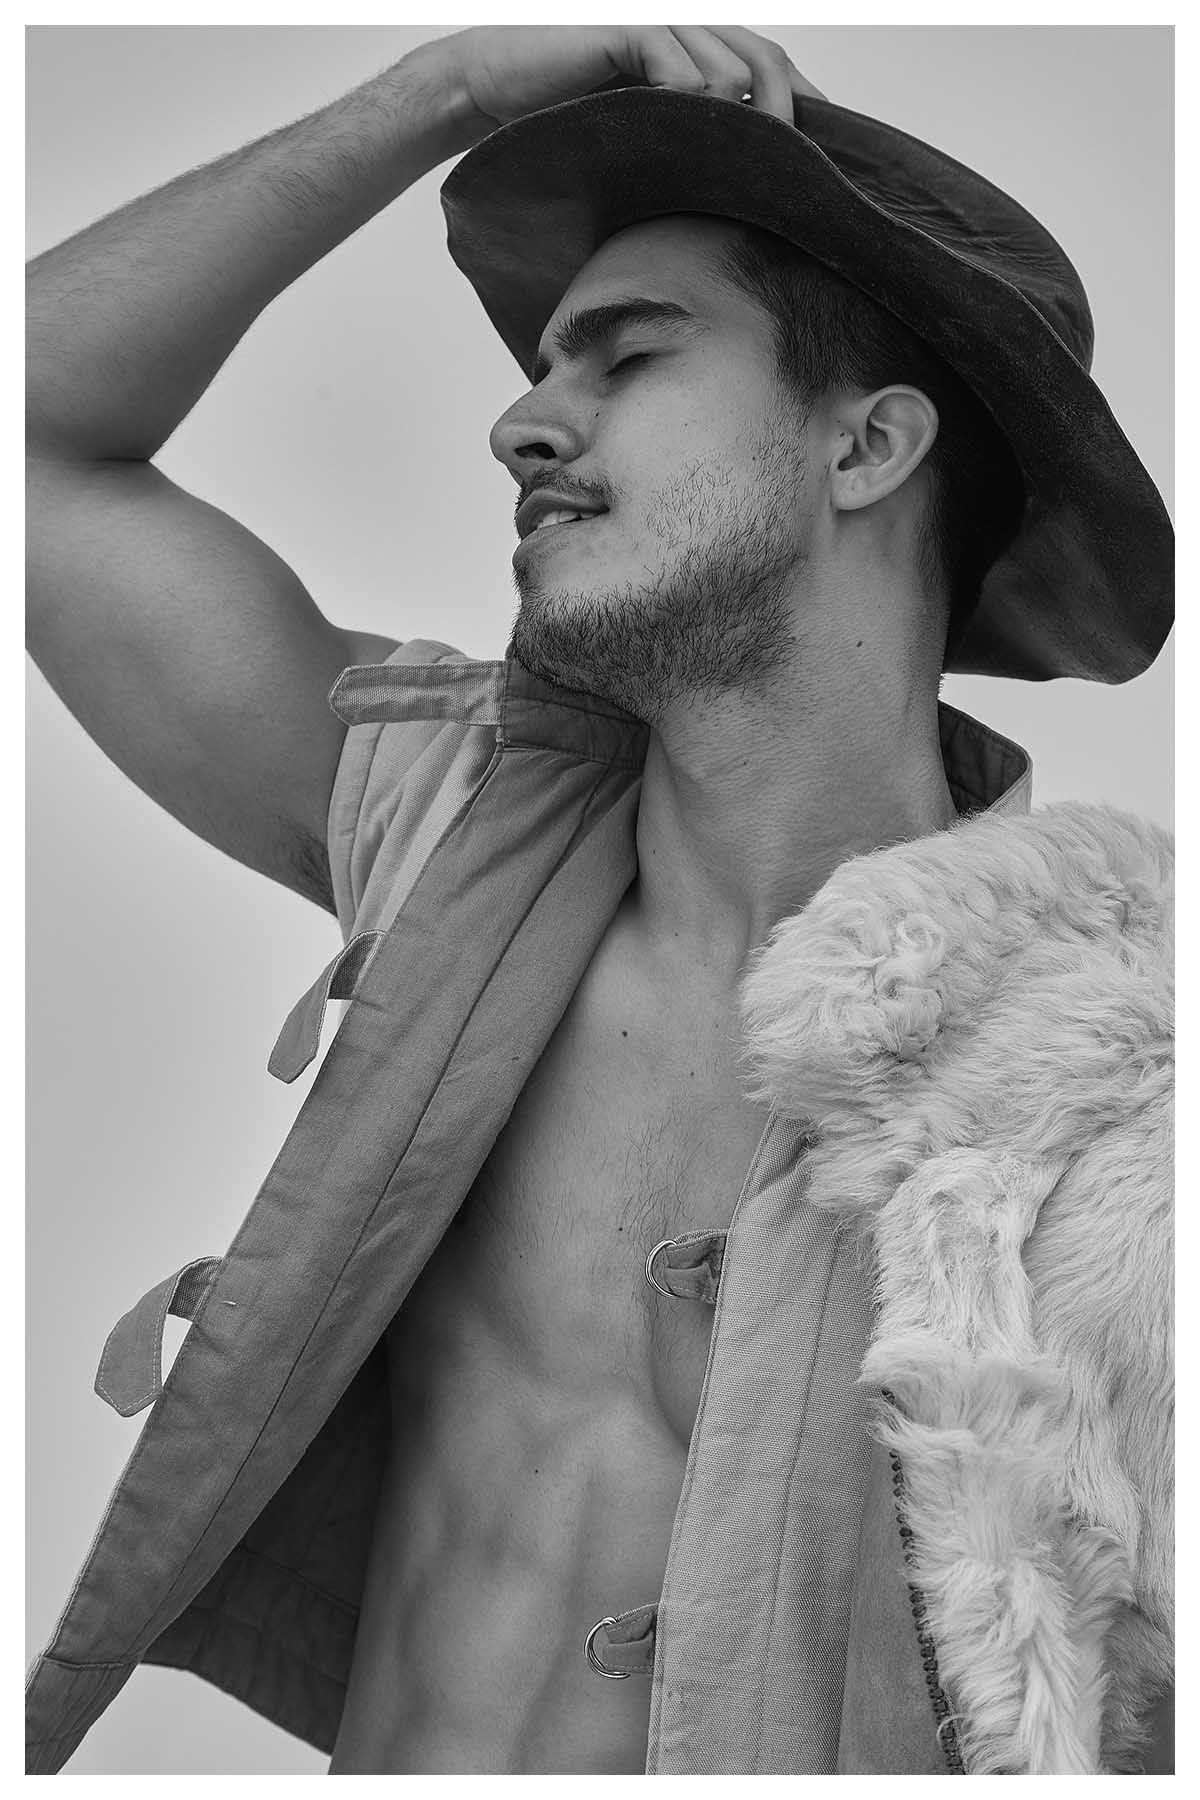 Gabriel Braghin by Anderson Bruno for Brazilian Male Model